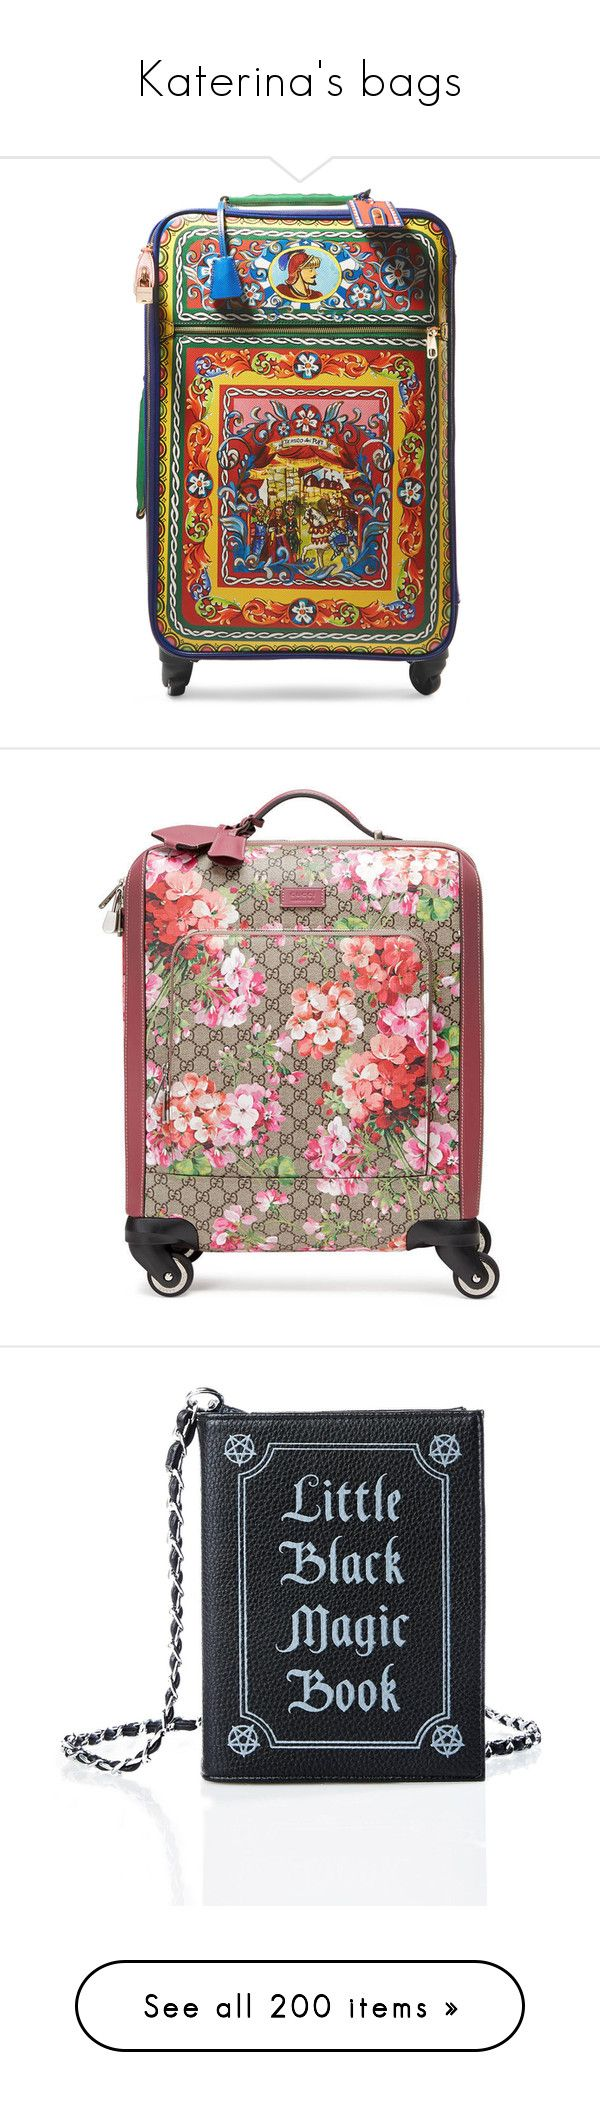 """Katerina's bags"" by katie-e-thomson ❤ liked on Polyvore featuring bags, luggage, accessories, fillers, tasker, travel bags, mens carry on bags, mens leather bags, gucci mens bag and mens leather carry on bag"